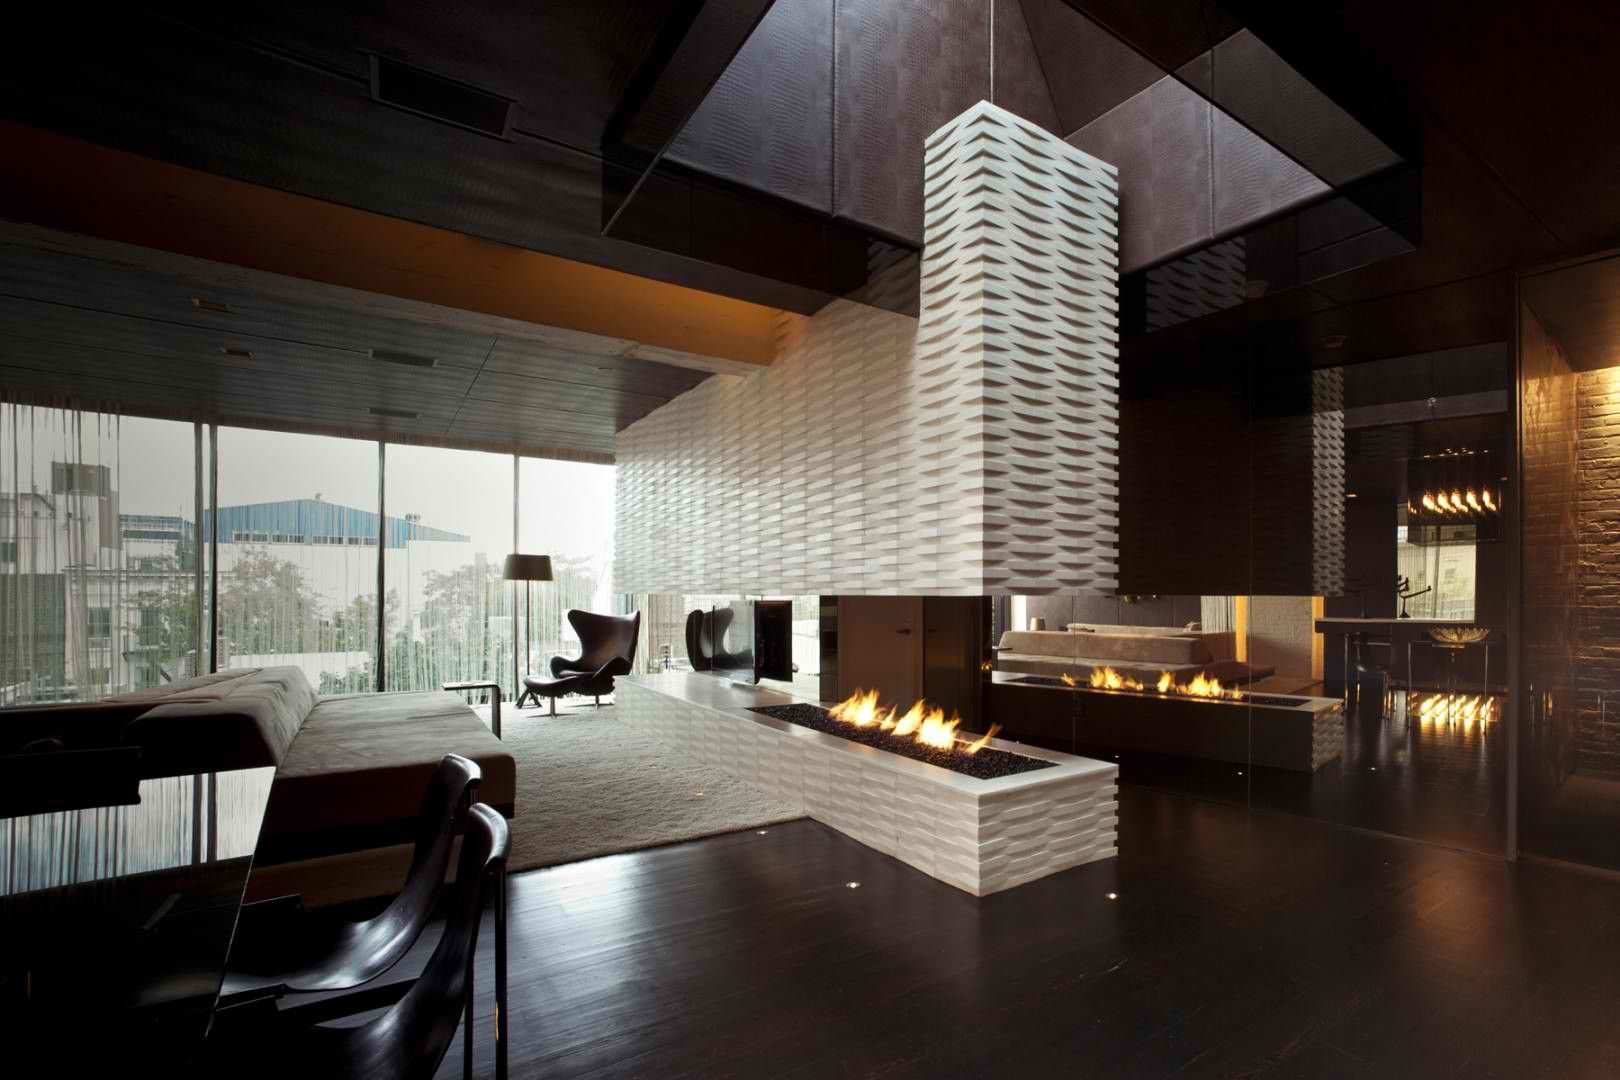 Luxury modern interior design skylab architecture modern luxury houses architecturemodern luxury miami scandinavian design luxury contemporary homes